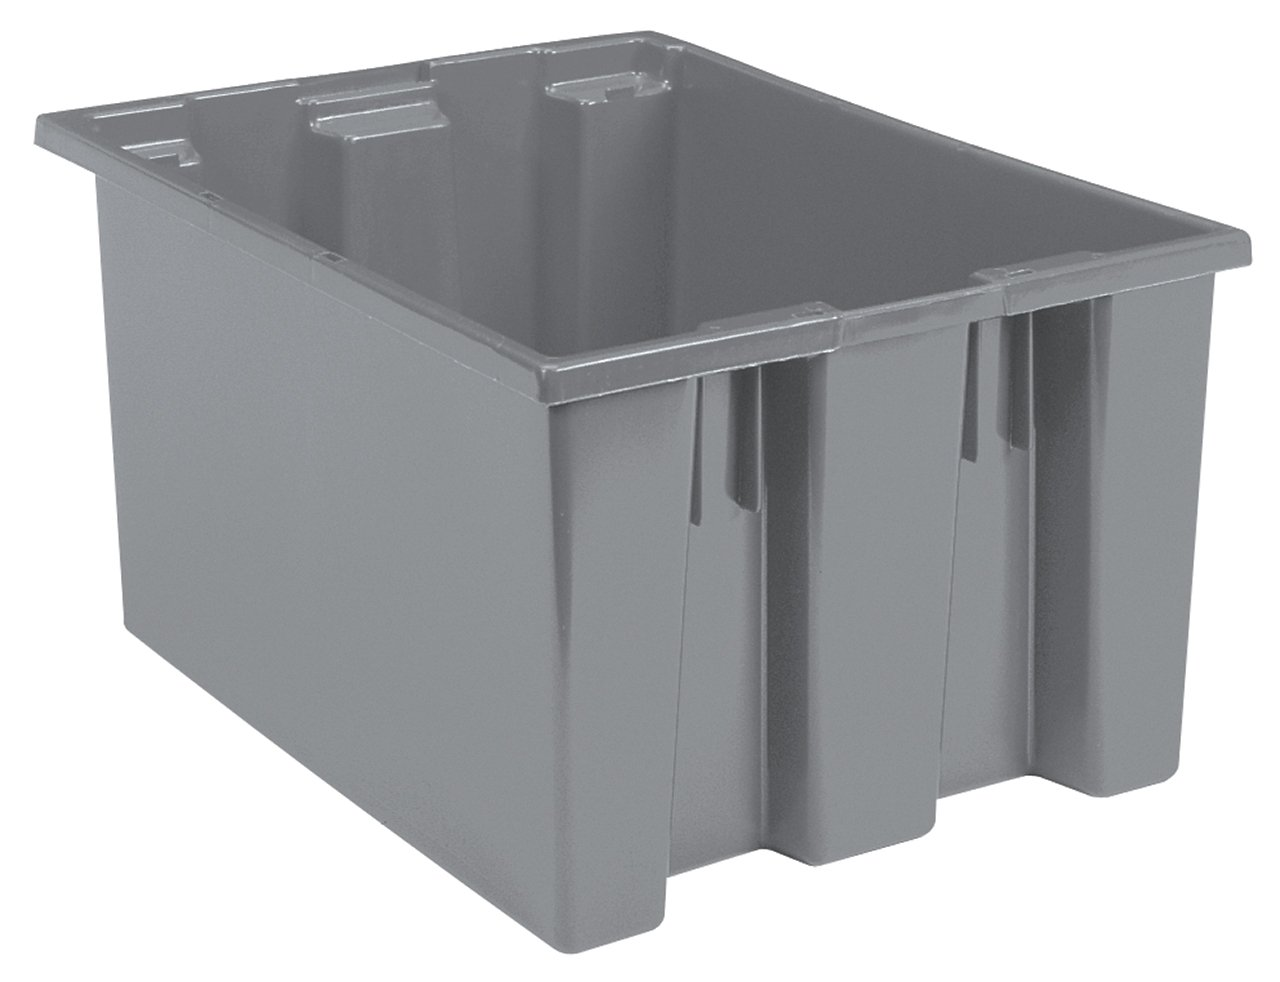 Akro-Mils 35230 Nest and Stack Plastic Storage and Distribution Tote, 23.5-Inch L by 19.5-Inch W by 13-Inch H, Grey, Case of 3